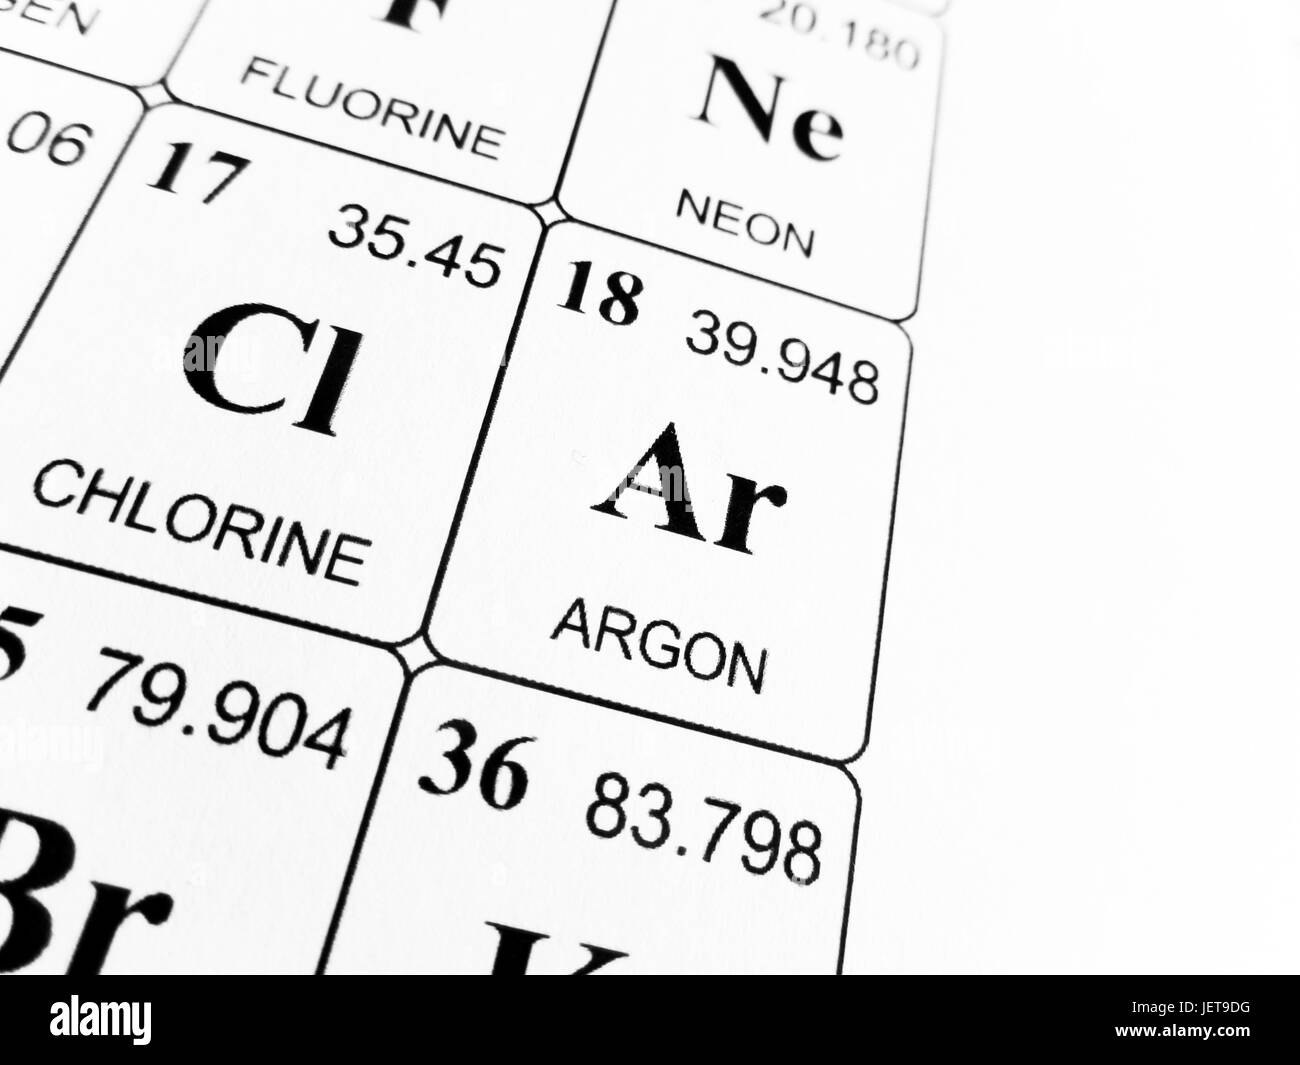 Argon on periodic table image collections periodic table images argon on the periodic table of the elements stock photo royalty argon on the periodic table gamestrikefo Choice Image